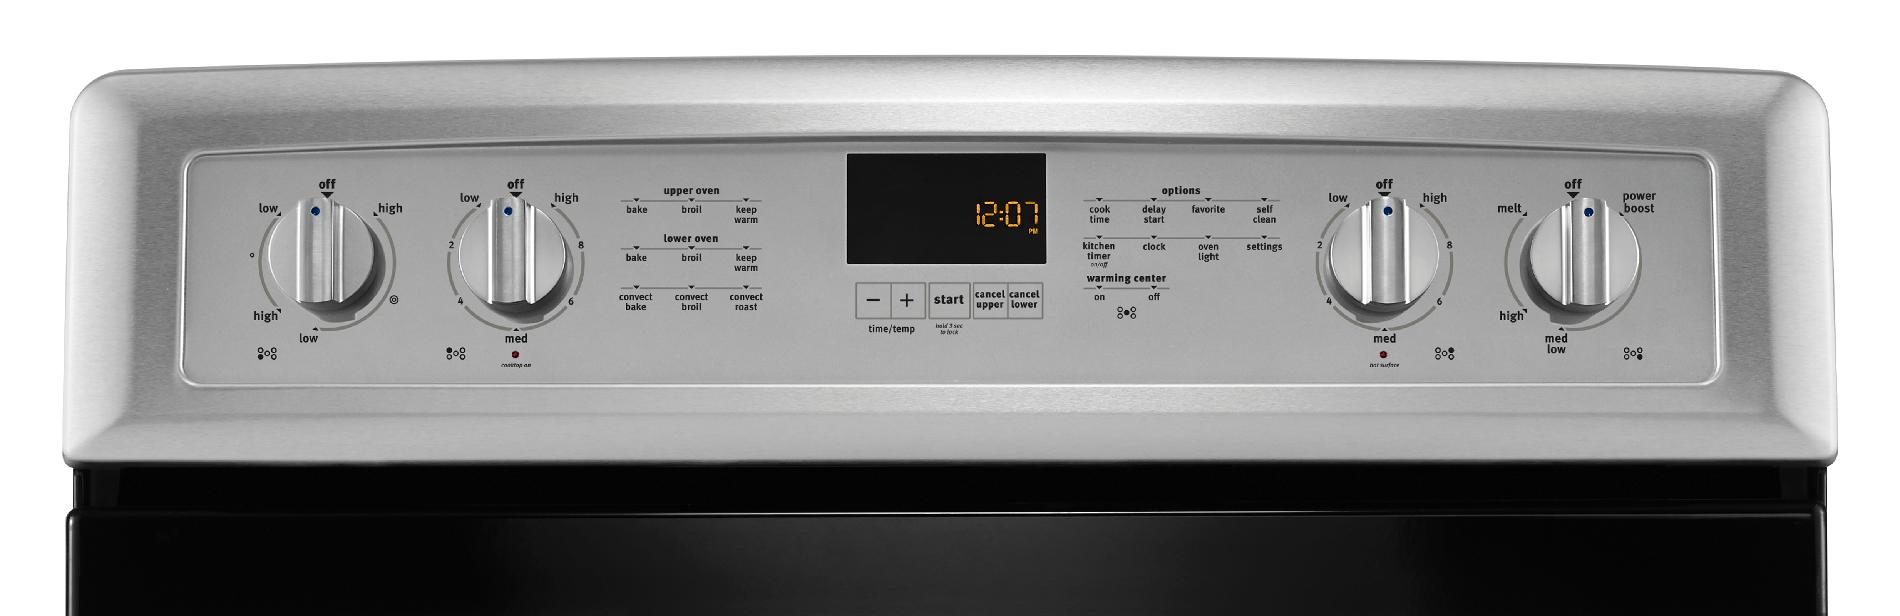 Maytag MET8820DS Gemini® 6.7 cu. ft. Double-Oven Electric Range w/Convection - Stainless Steel